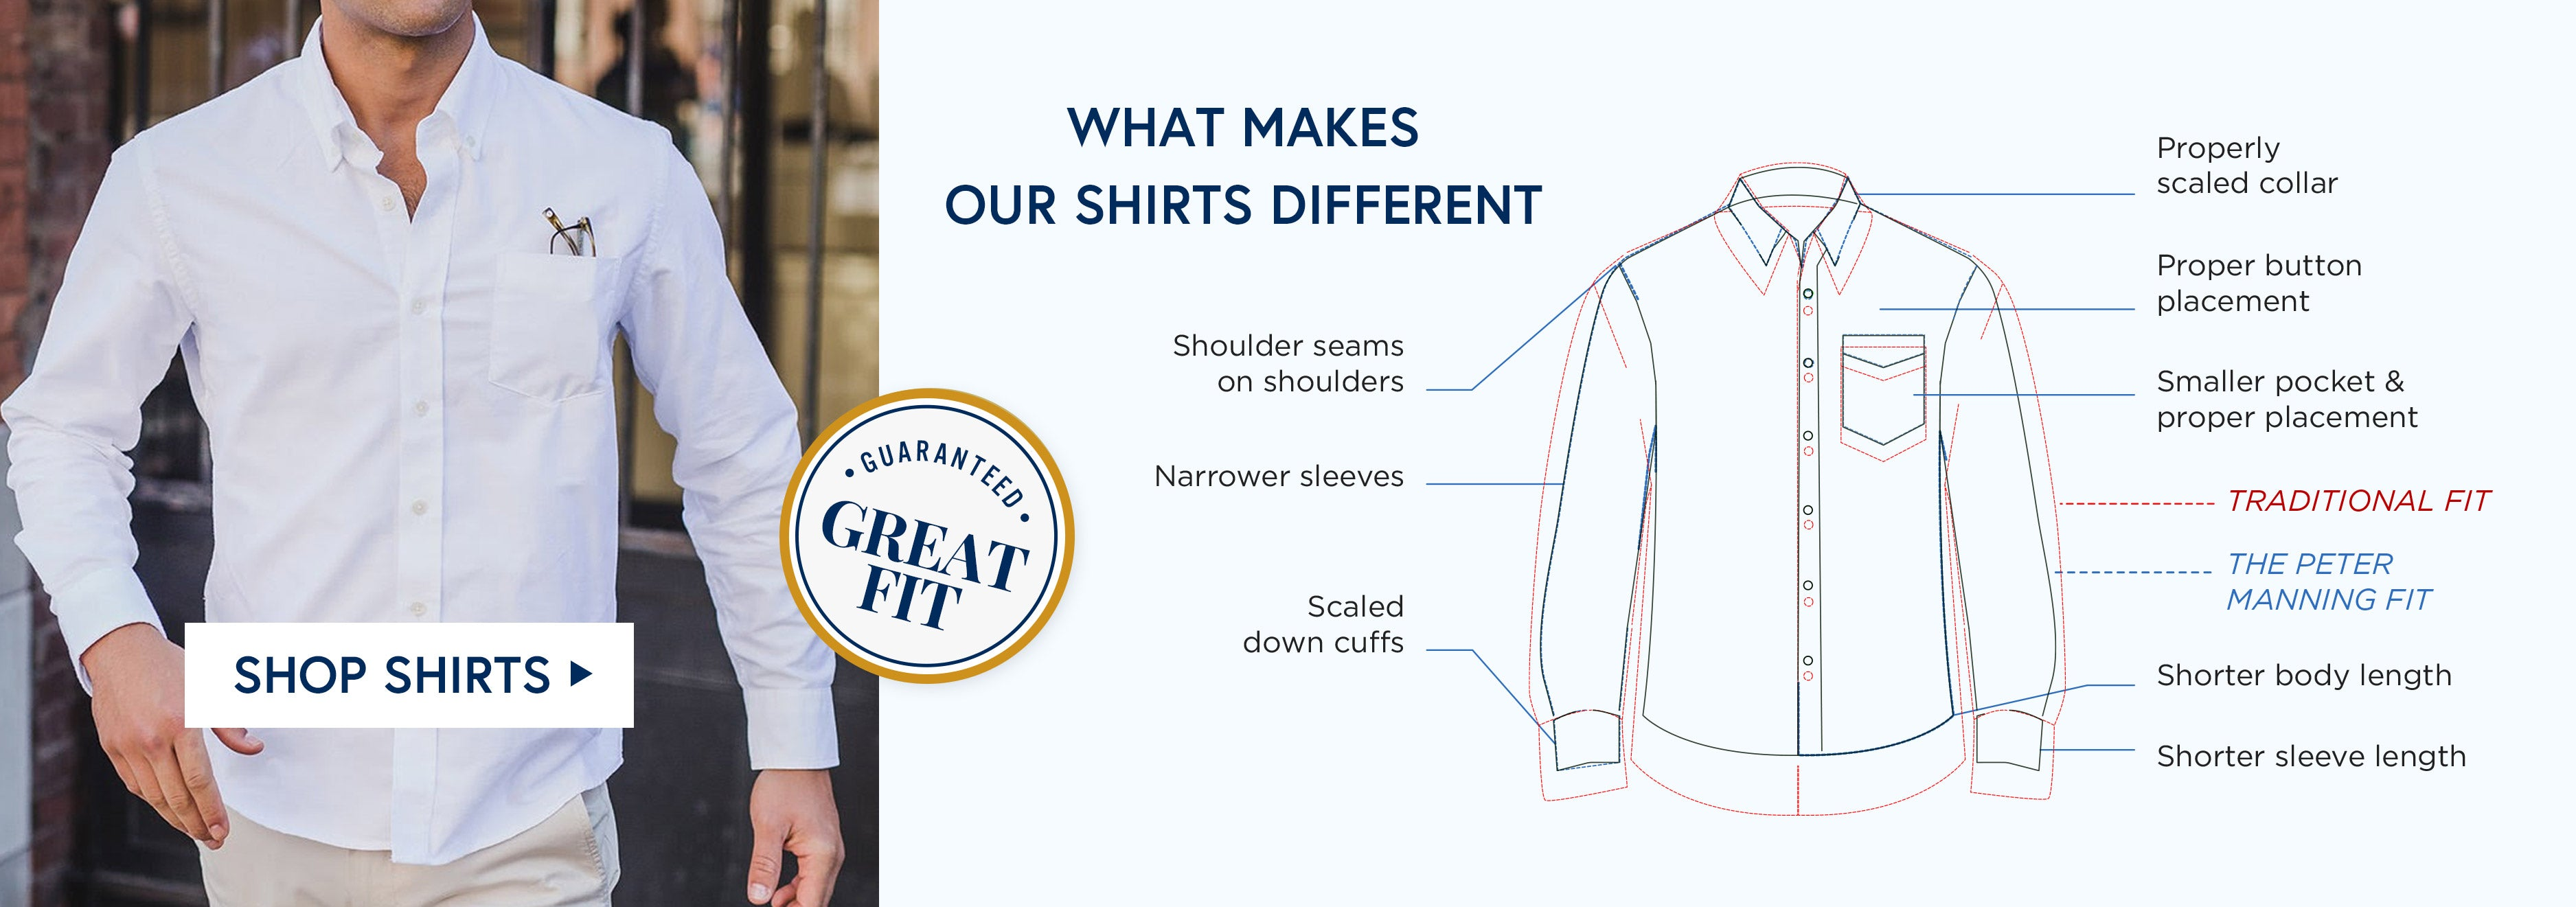 Find out what makes our shirts different - Shoulder Seams on Shoulders, Proper Button Placement, Properly Scaled Collar - Shop Pants